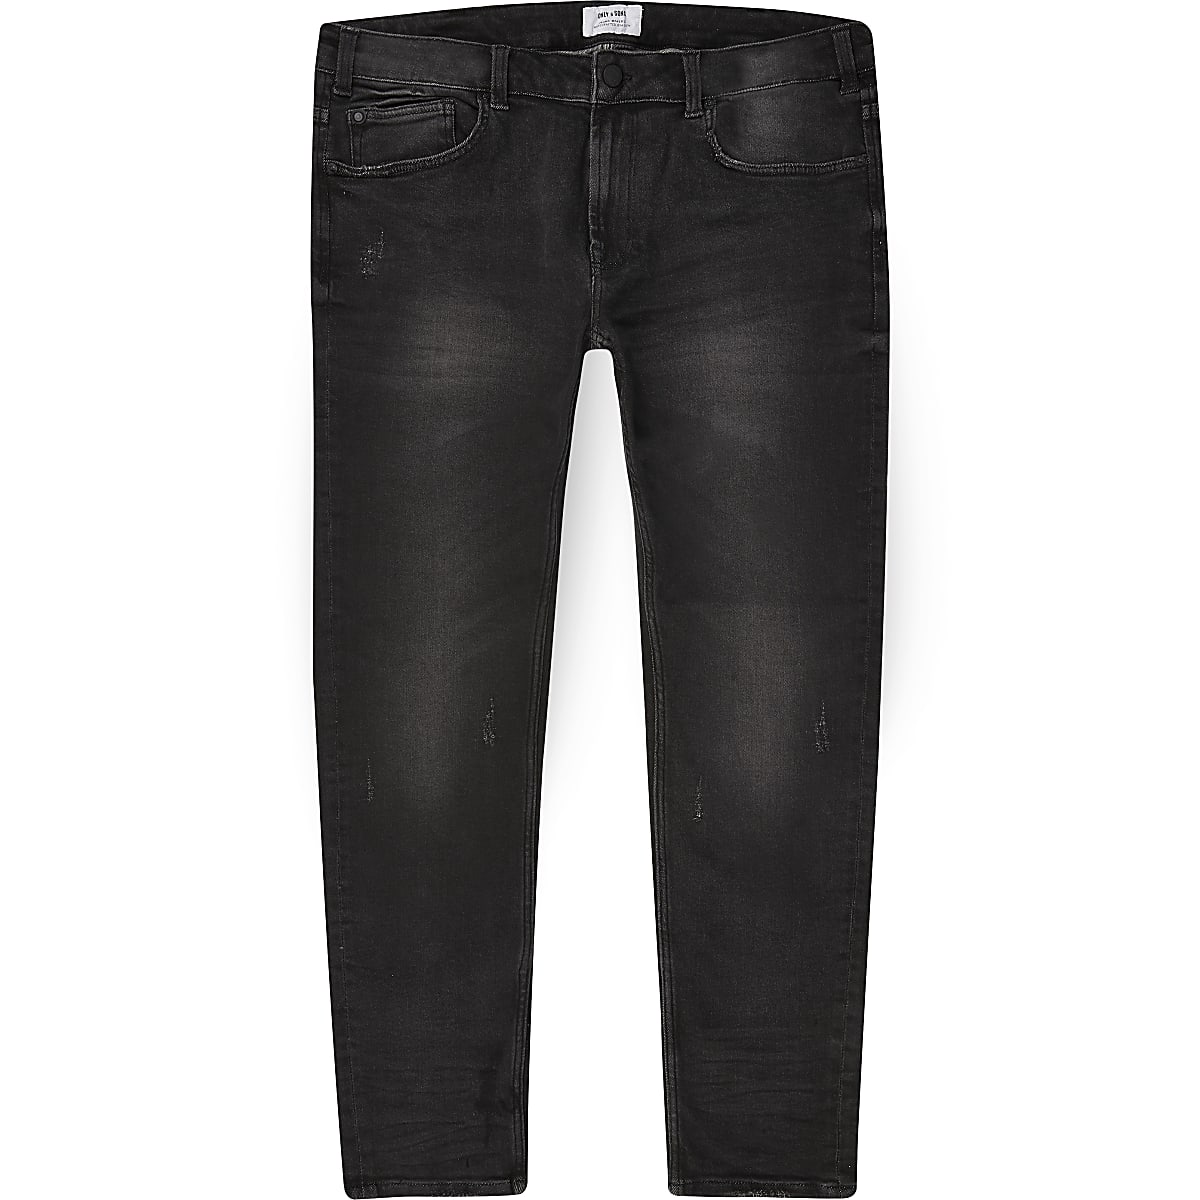 Only & Sons – Big & Tall – Schwarze Skinny Jeans